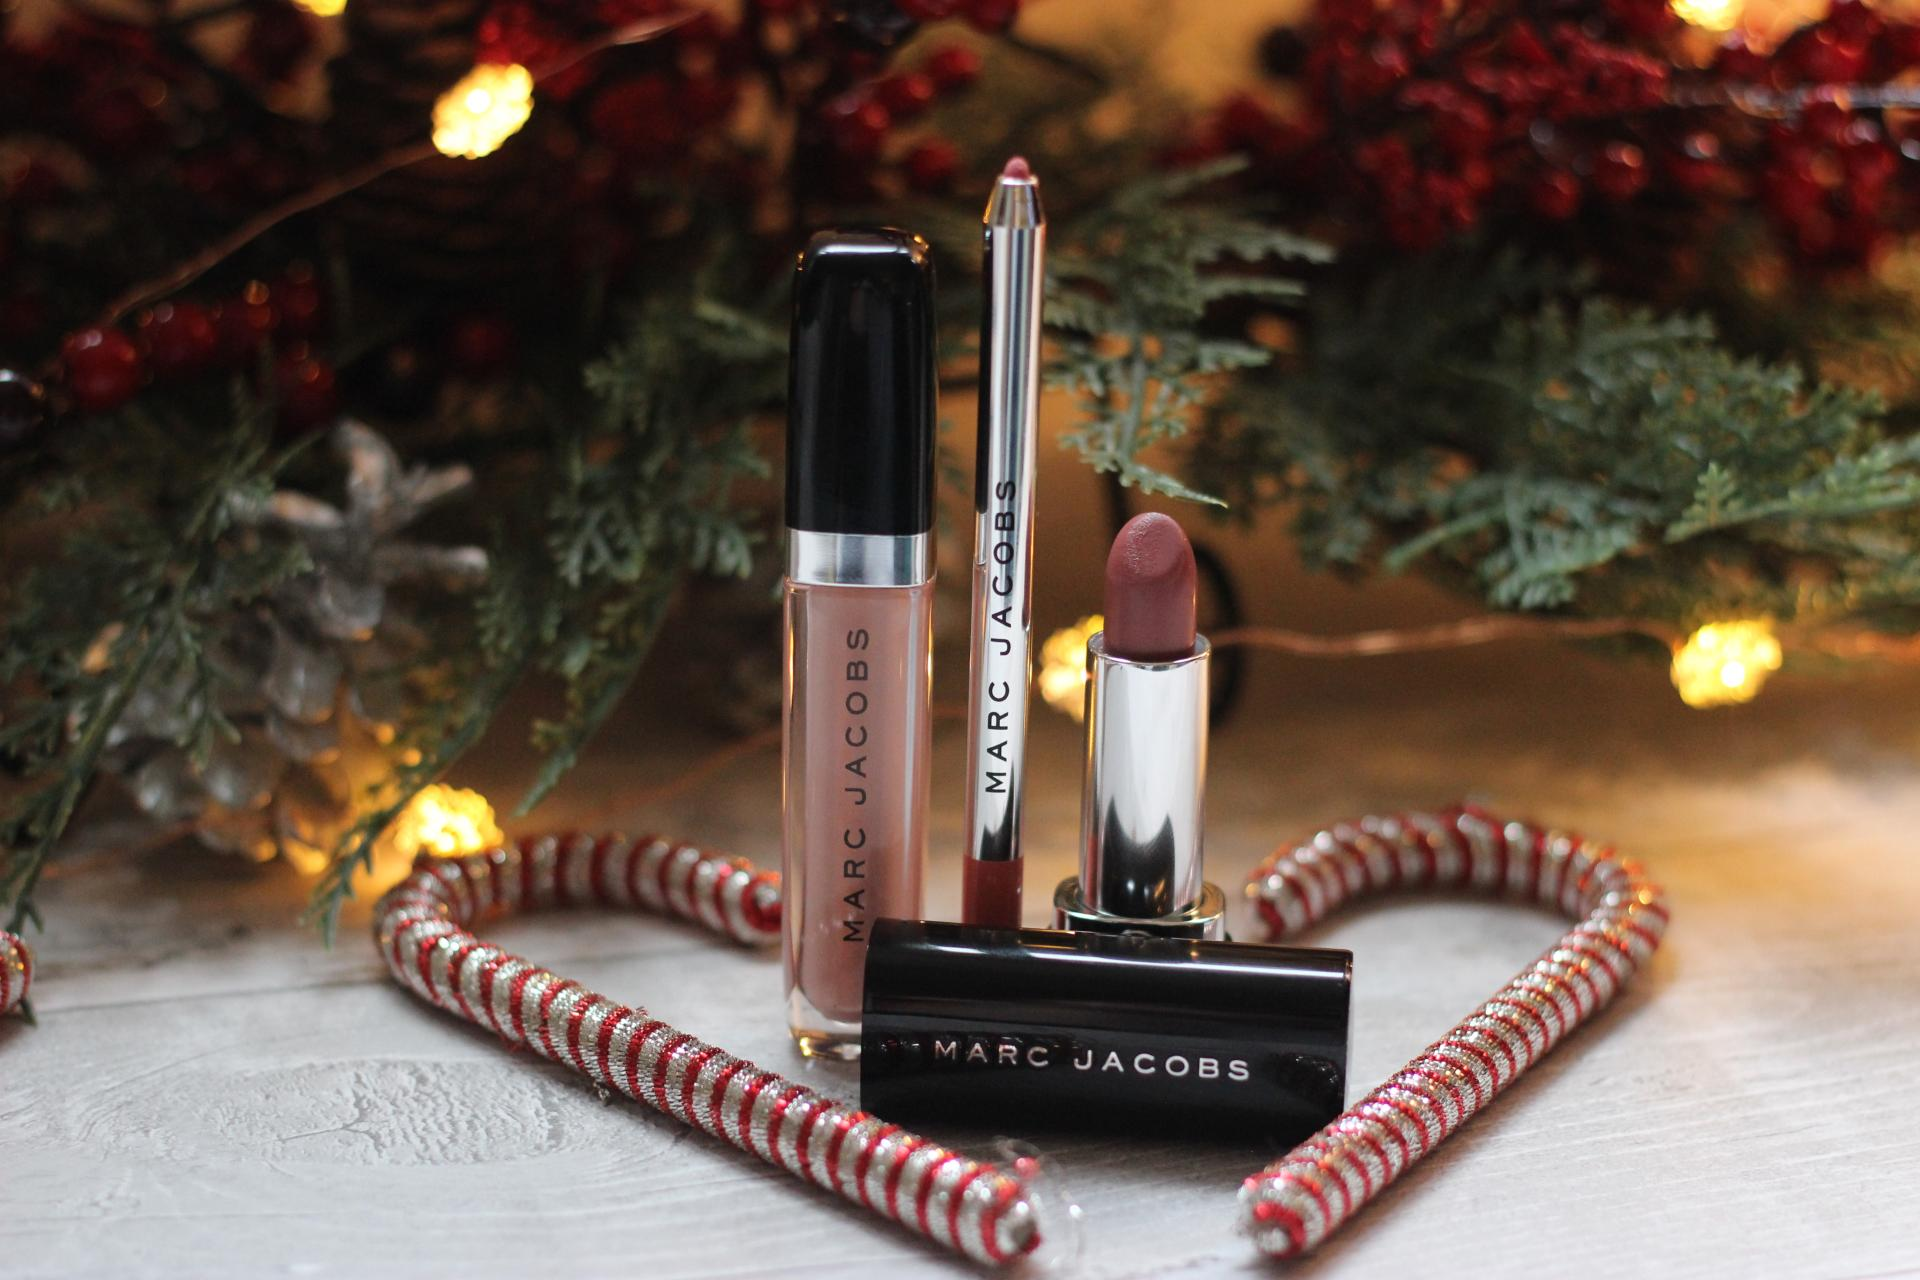 Marc Jacobs Beauty at Harrods